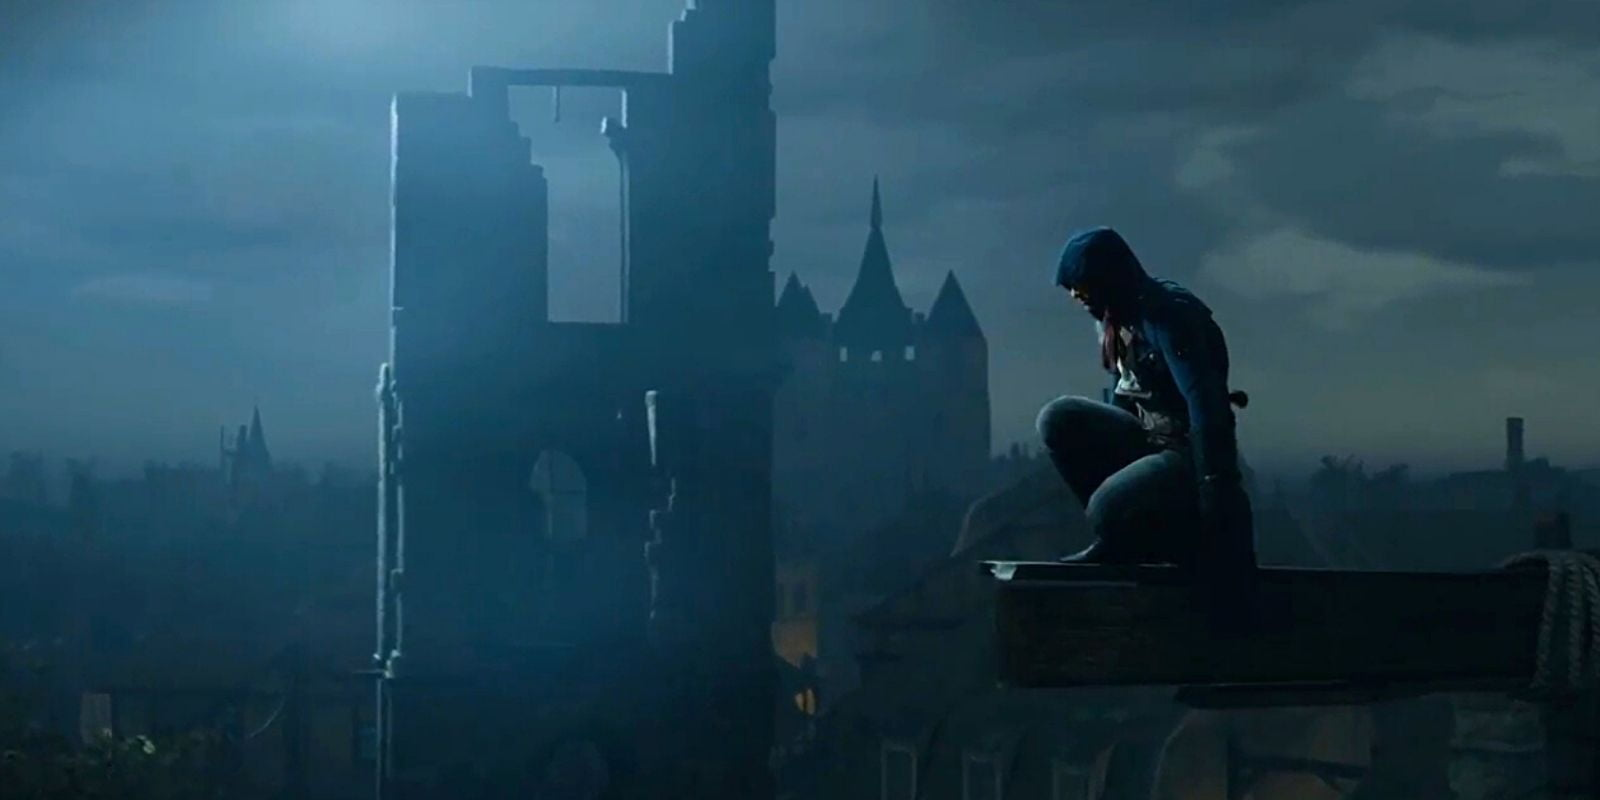 Must watch: Assassin's Creed: Unity Characters Trailer